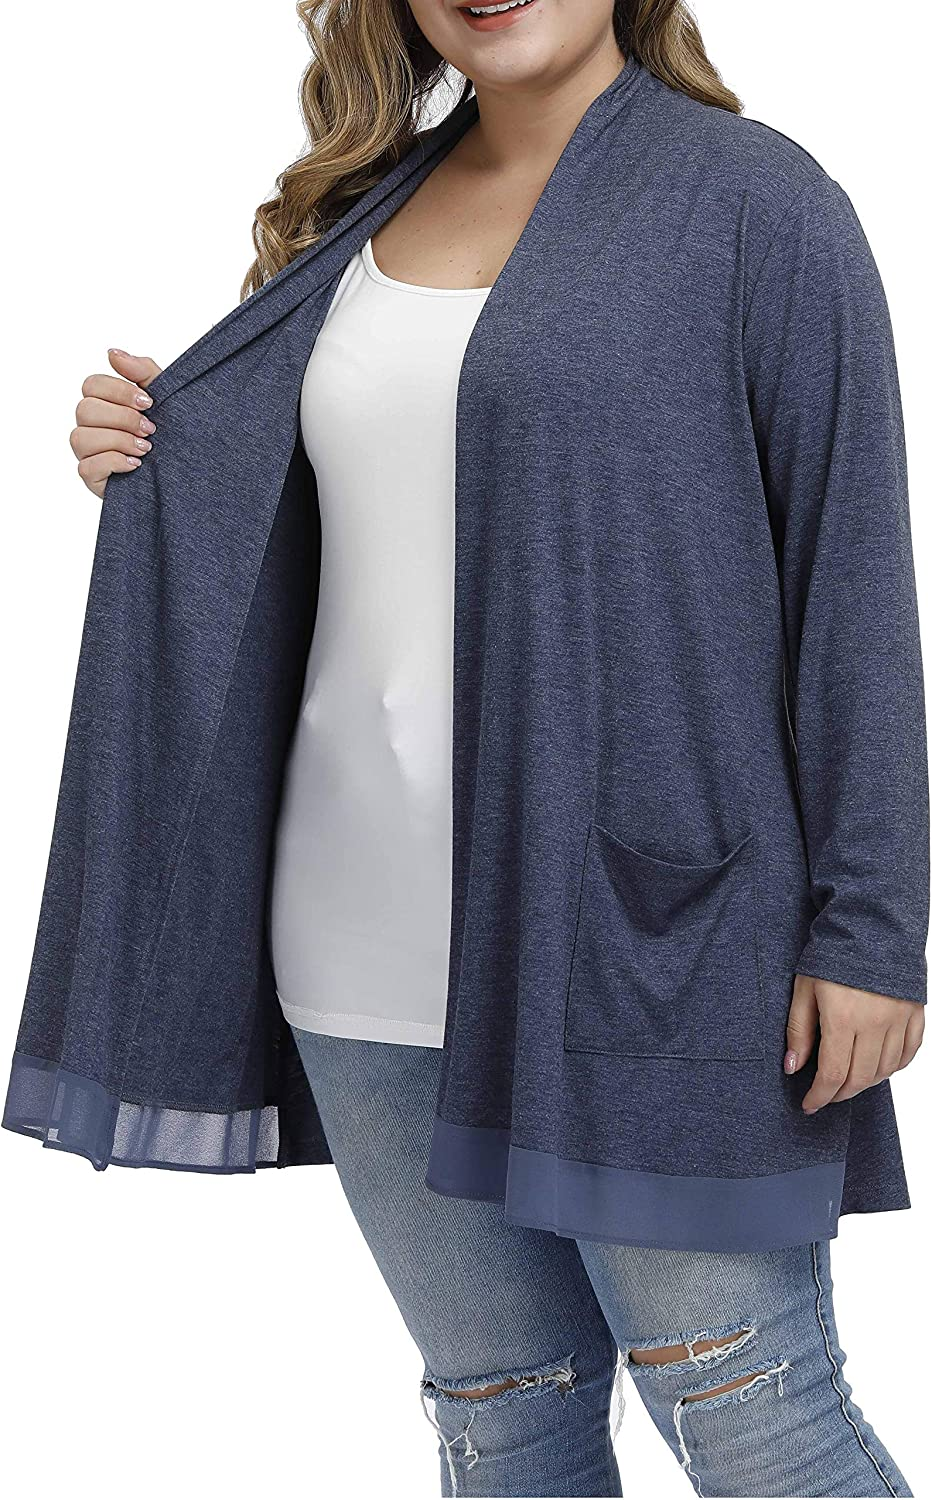 Shiaili Long Plus Size Cardigan Easy to Wear Drape Open Front Top for Women